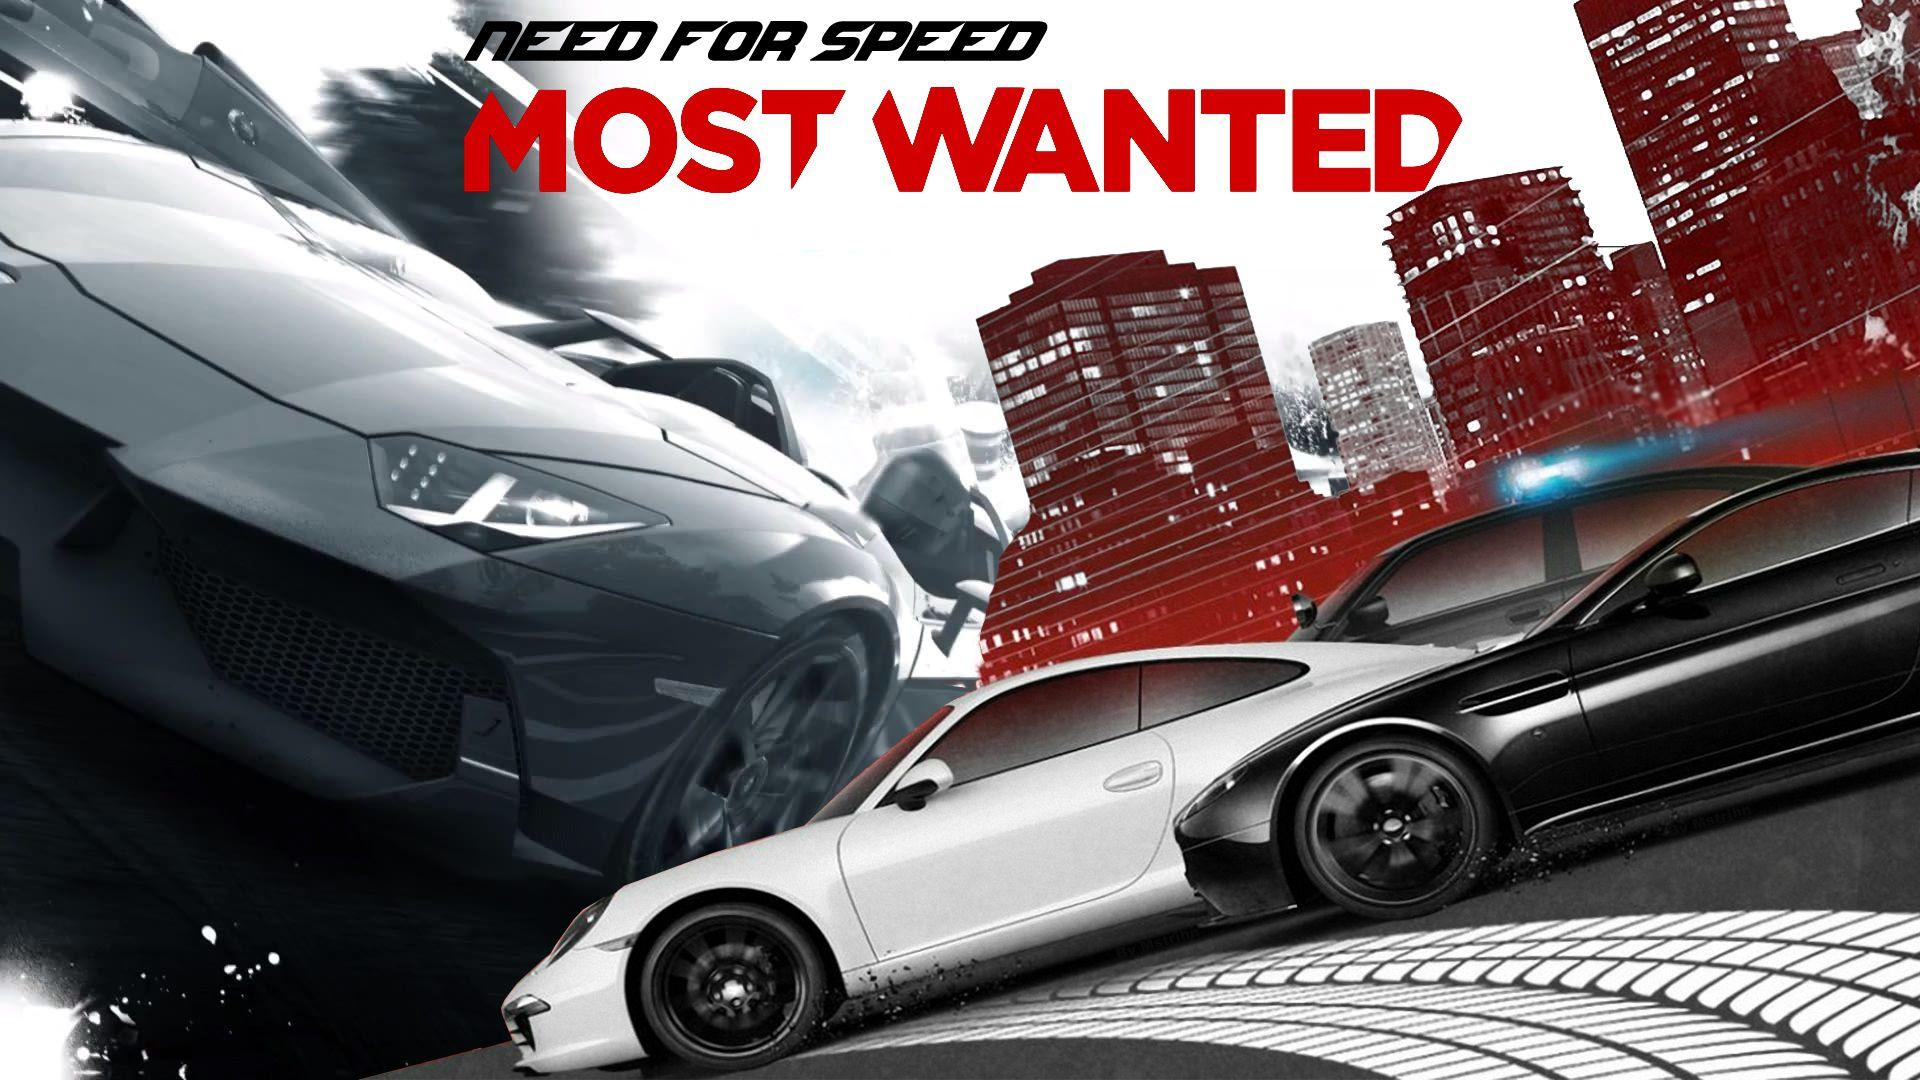 Need For Speed Most Wanted 2012 - wallpaper.